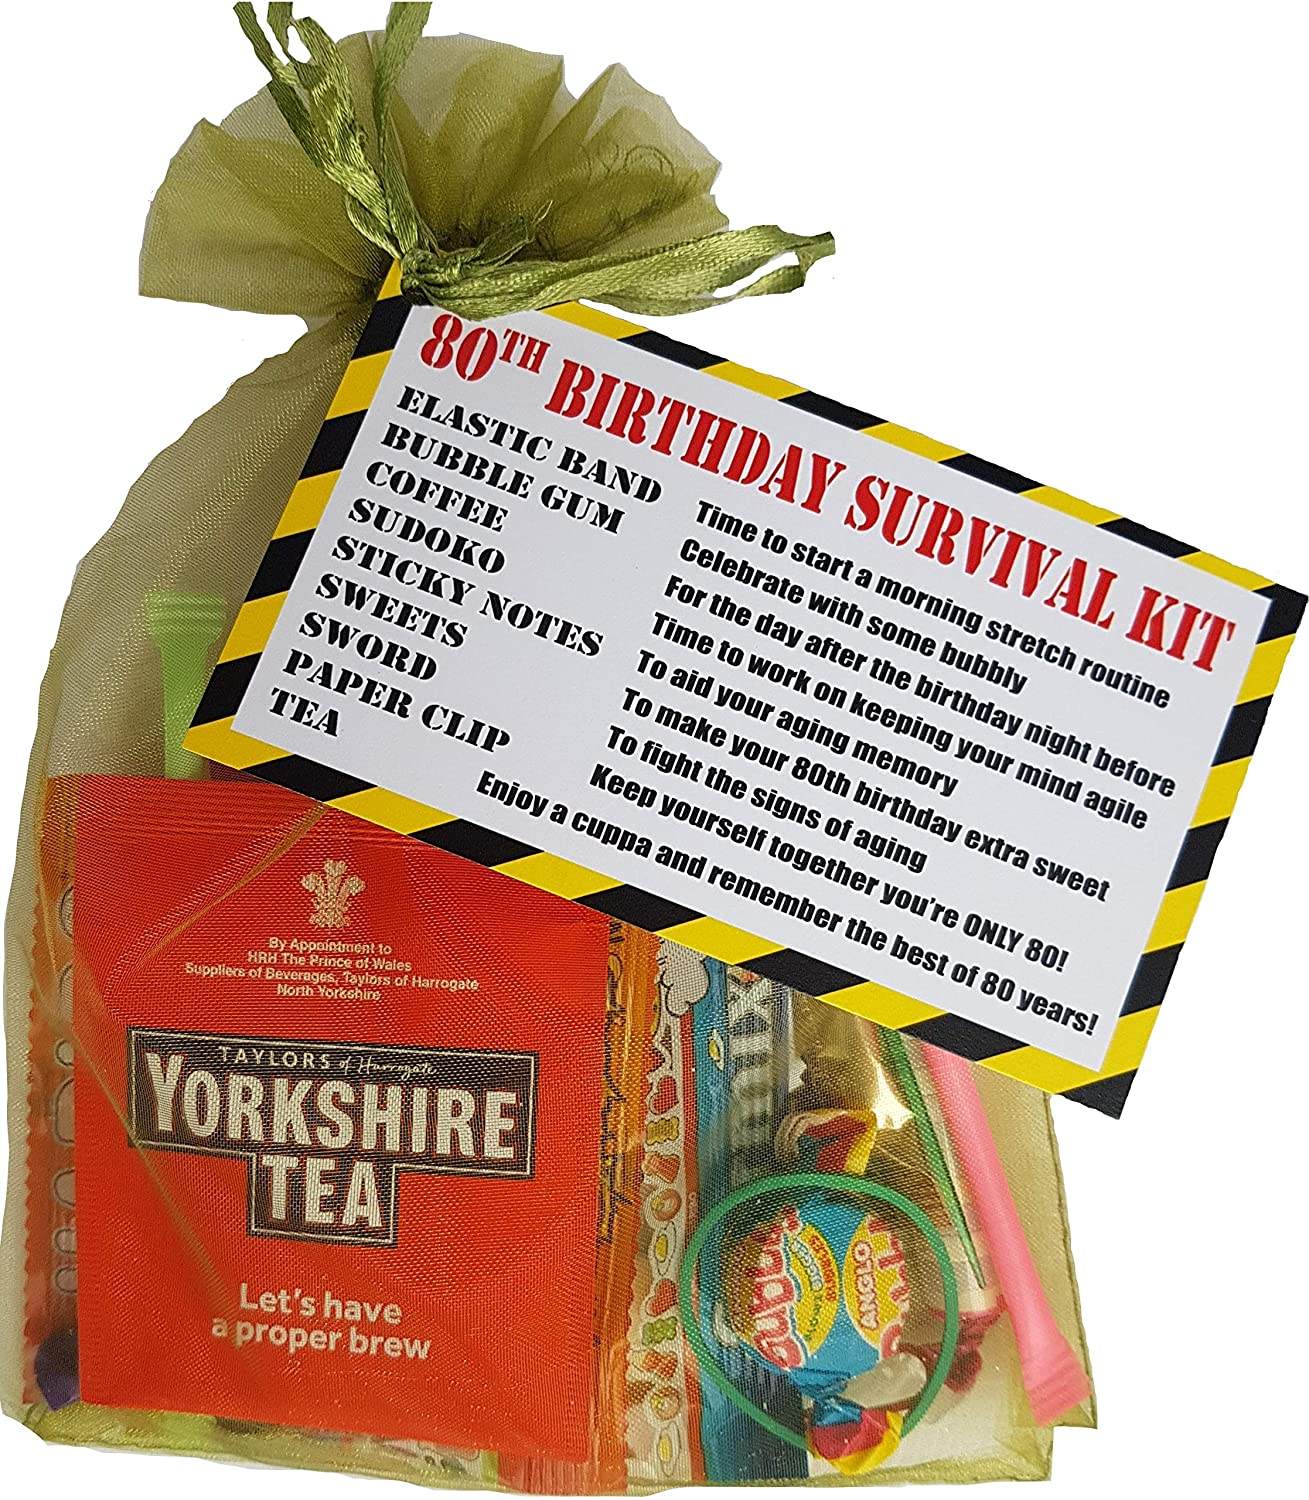 80th Birthday Survival KIT Gift Present Card Extra Fun Cheeky Idea For Him Her Men Women Grandad Granny Mum Dad Brother Or Sister